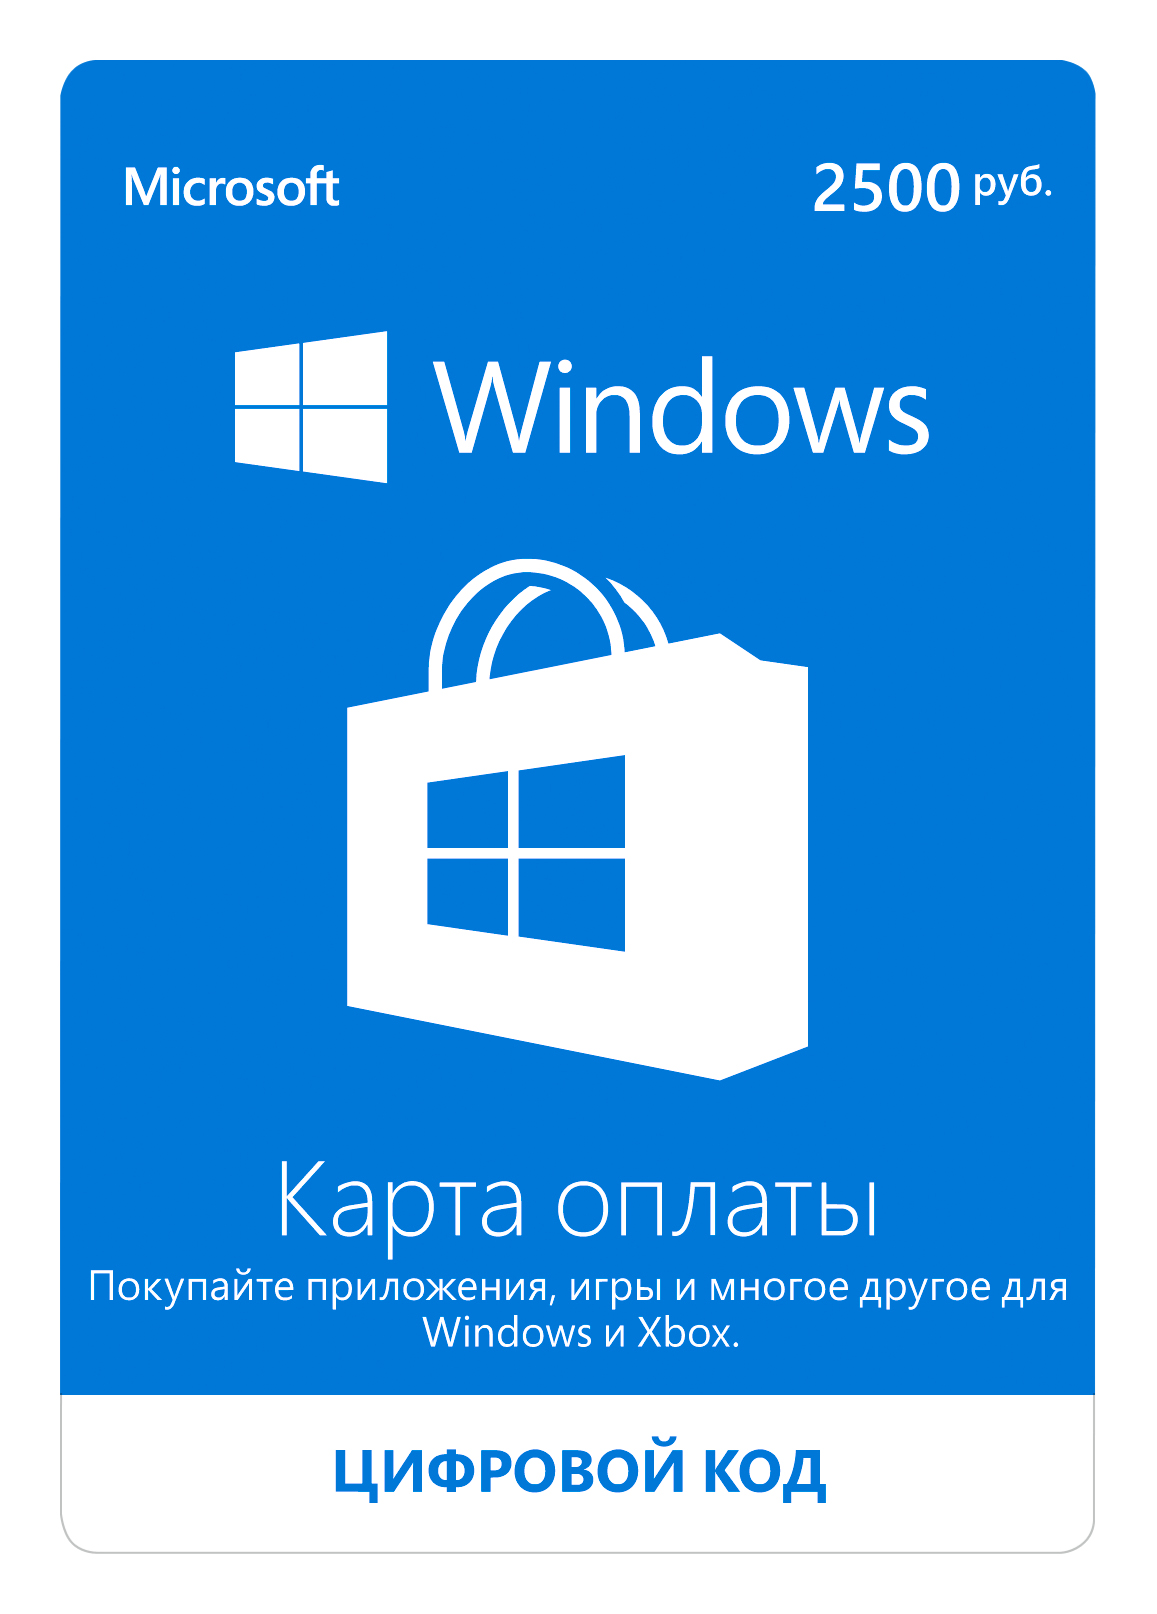 Xbox Live / Windows Store 2500 рублей (RUS) + СКИДКИ